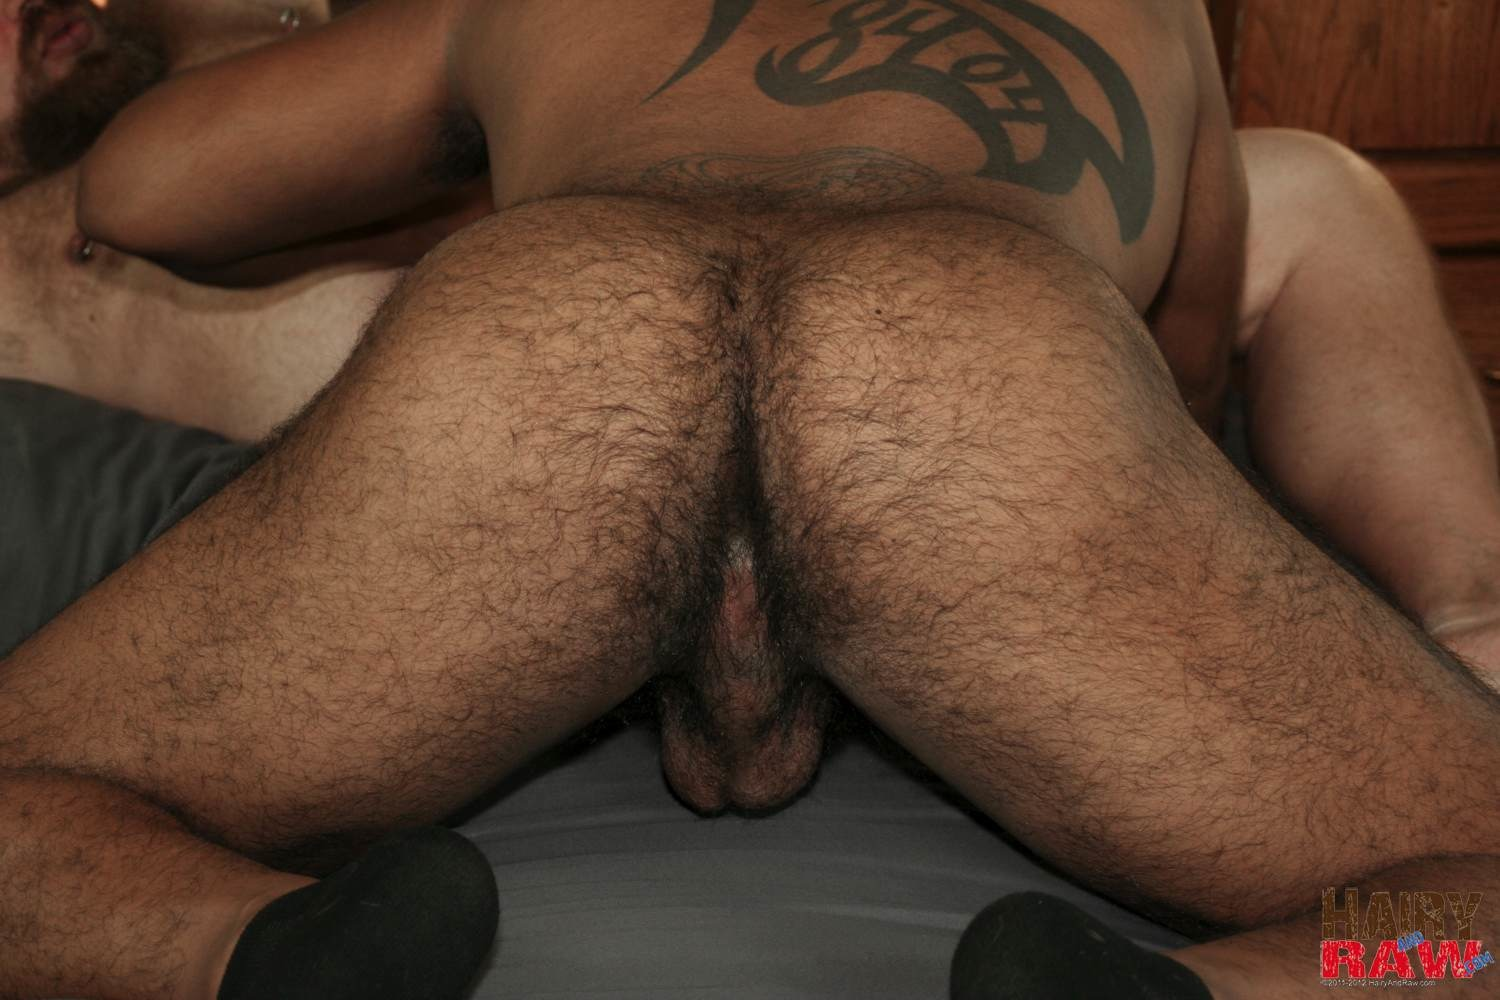 Hairy and Raw DJ Russo and Rico Vega Chubby Bears Barebacking Amateur Gay Porn 06 Amateur Interracial Chubby Bears Barebacking Sex Pigs